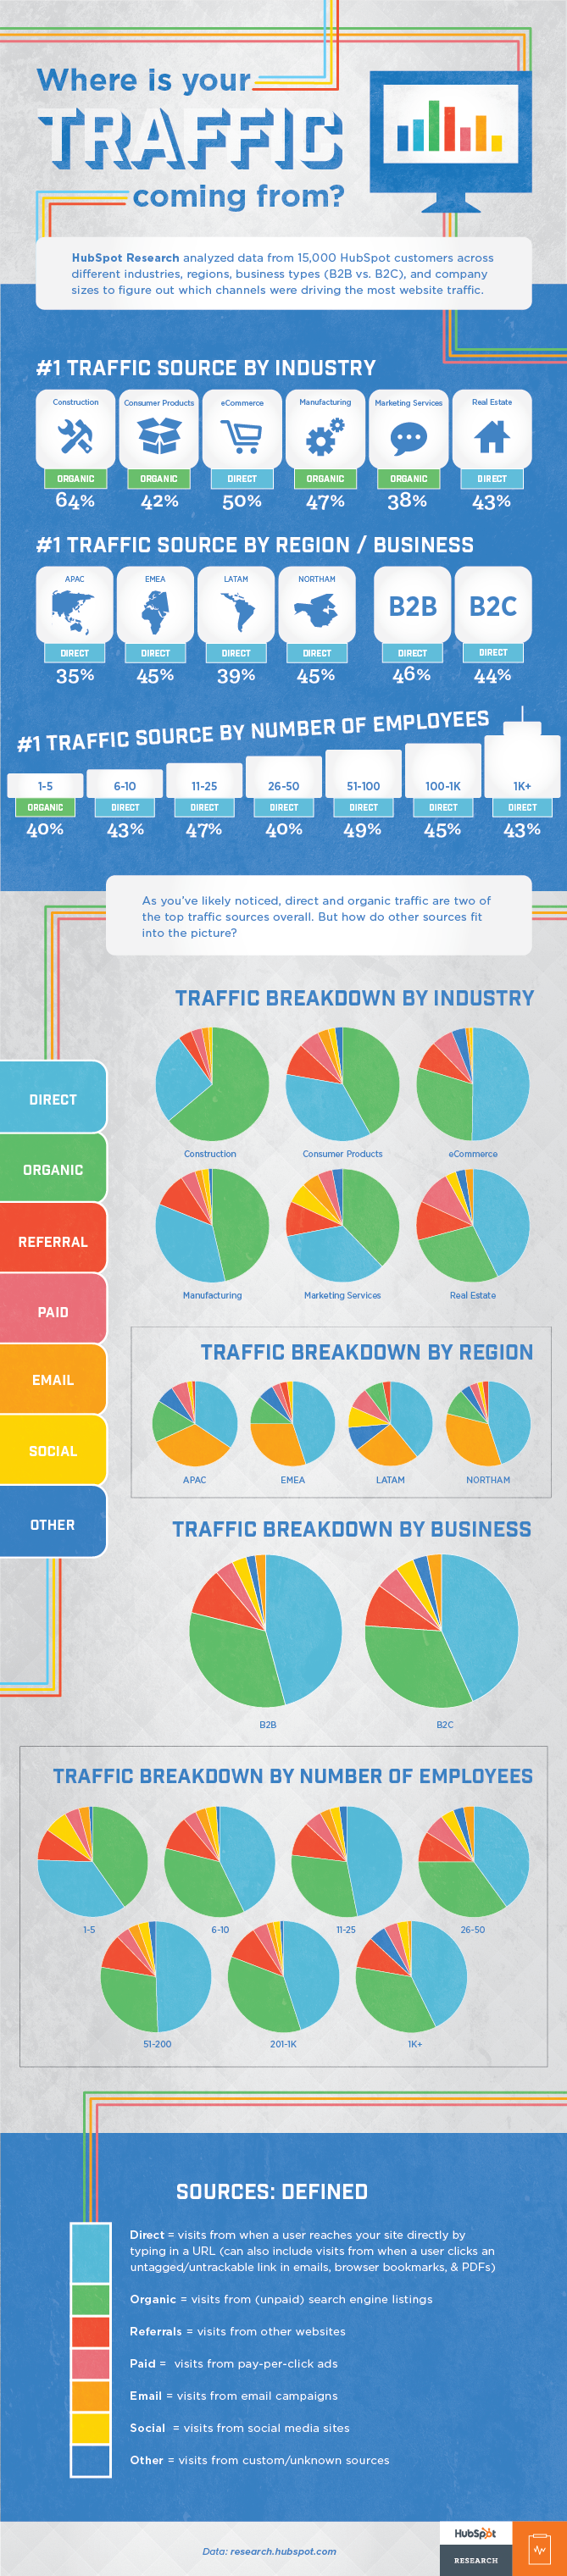 Where does the traffic comes from infographic by Hubspot